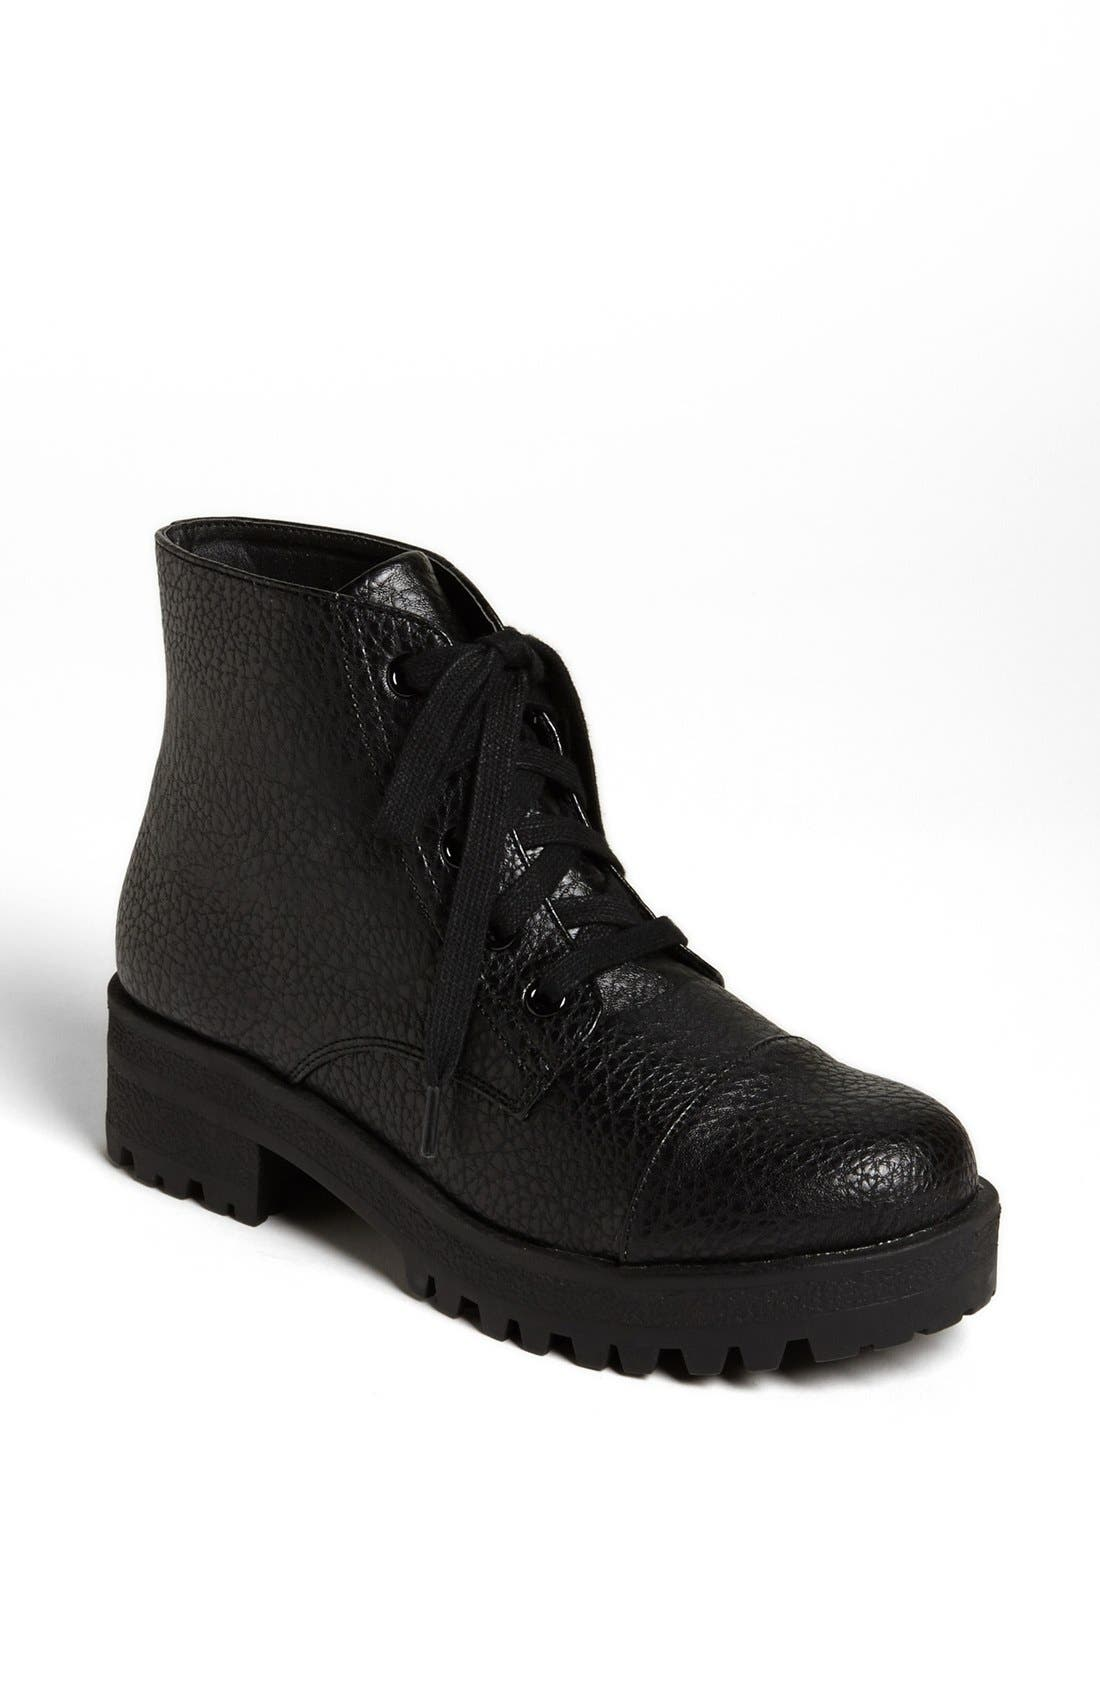 Main Image - Topshop 'Maxwell' Heavy Sole Boot